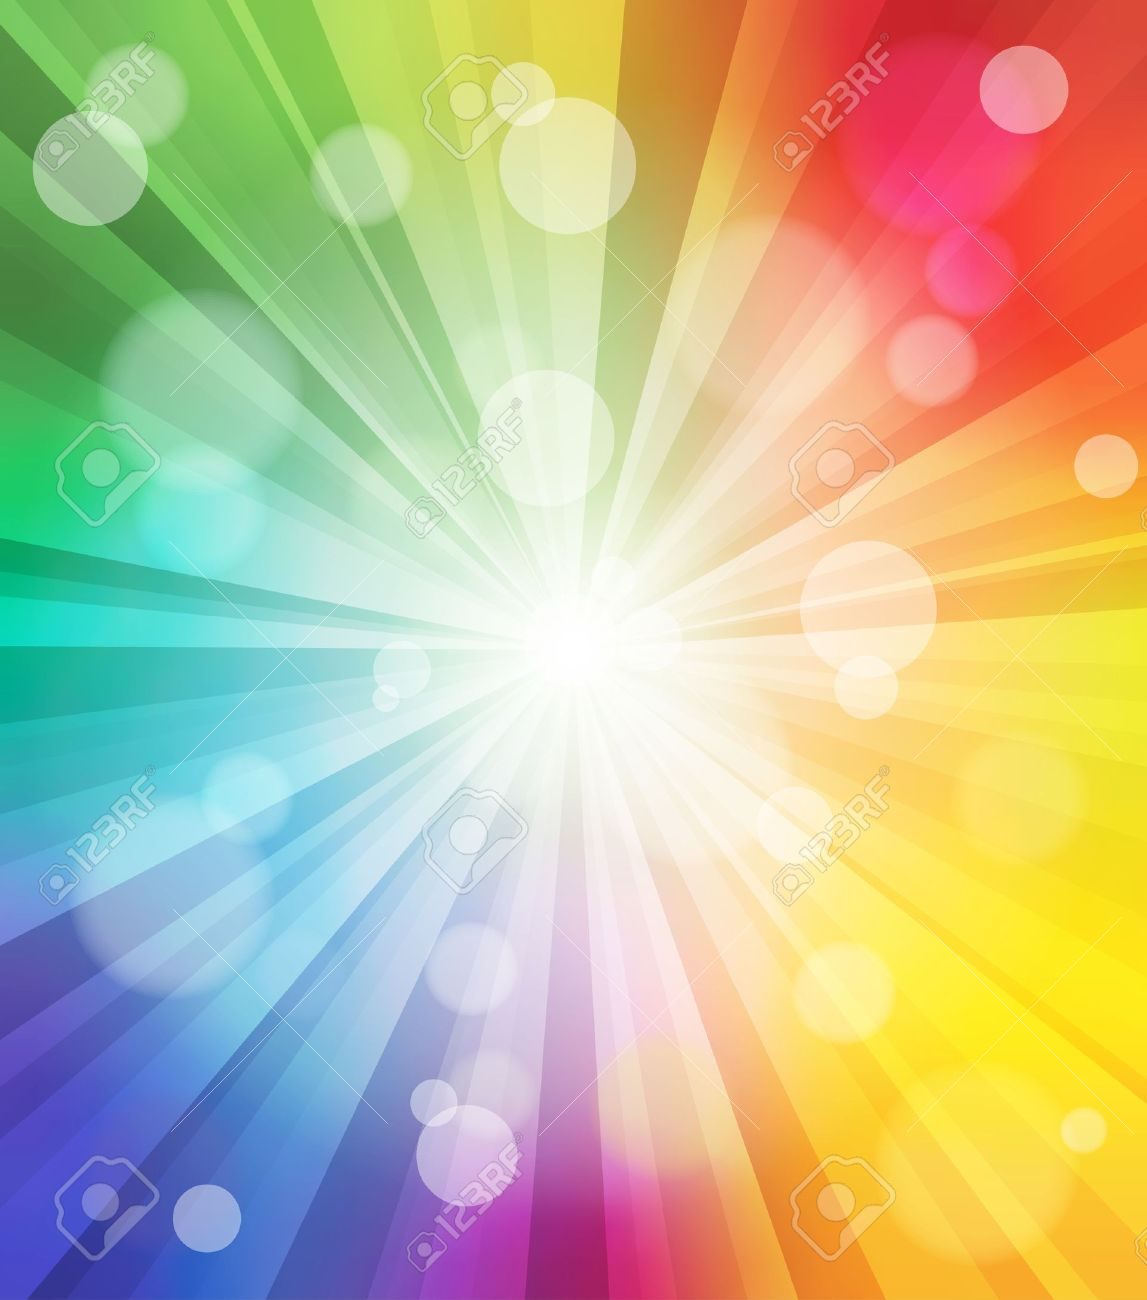 Colorful light effect background. glowing illustration. - 14402554